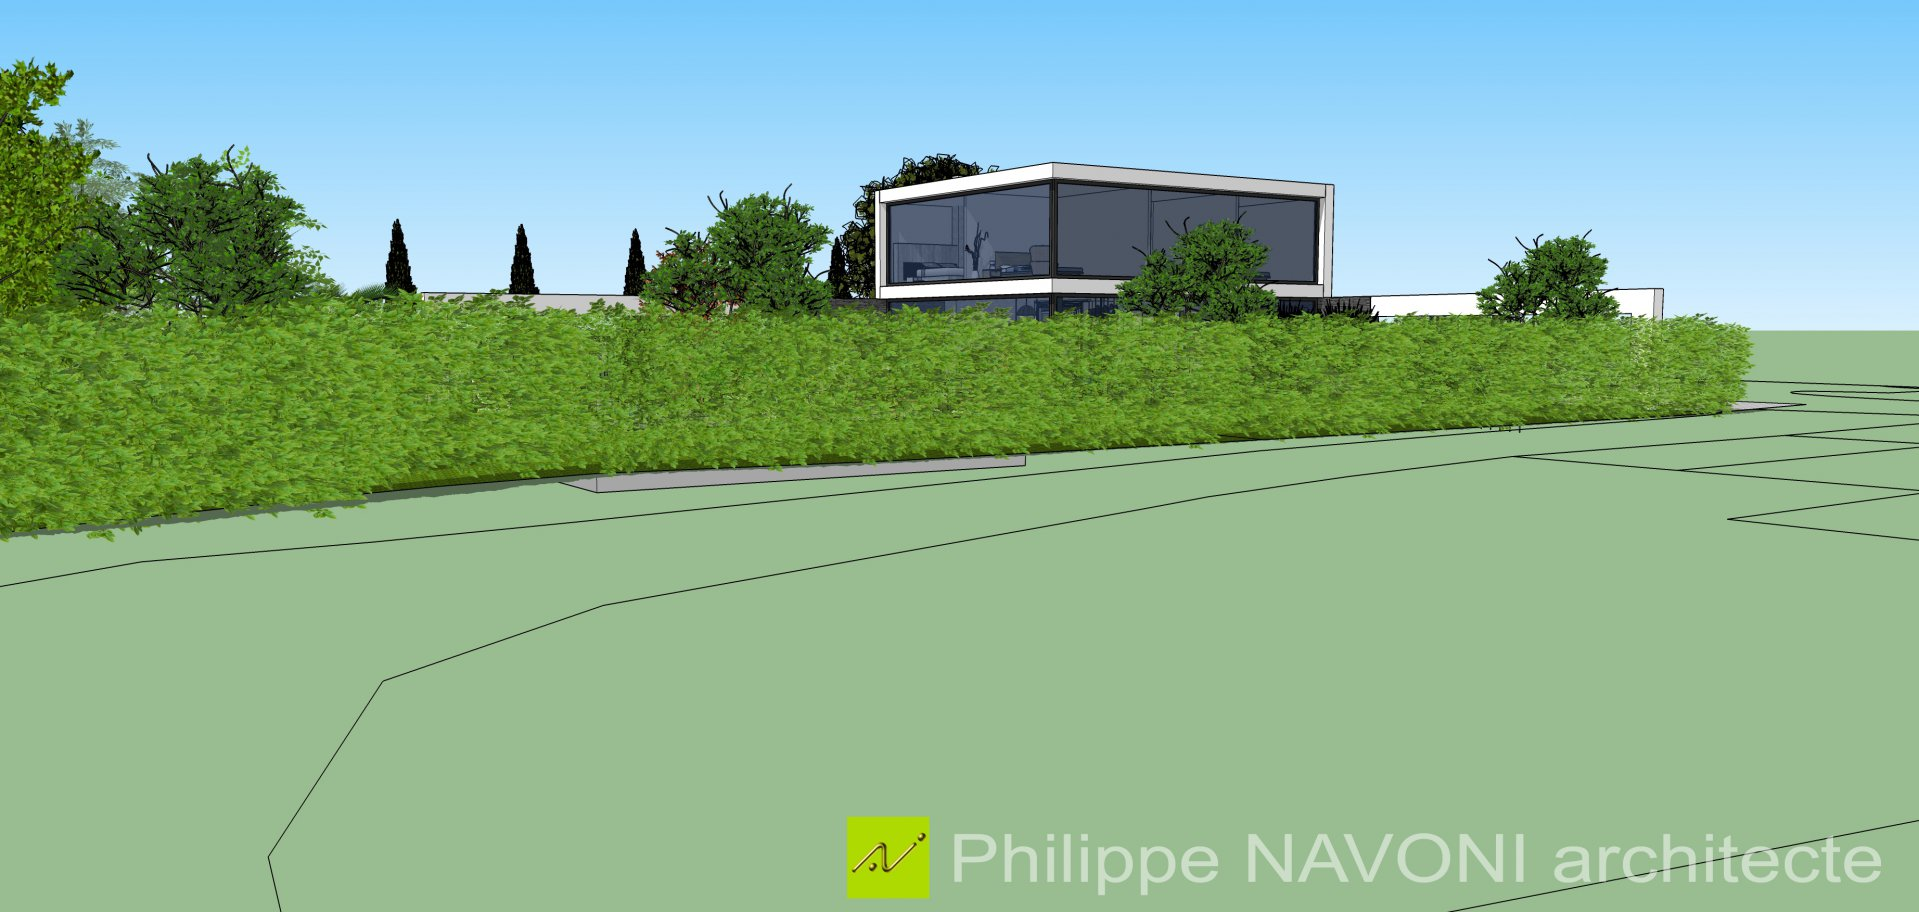 Sale Building land - La Colle-sur-Loup